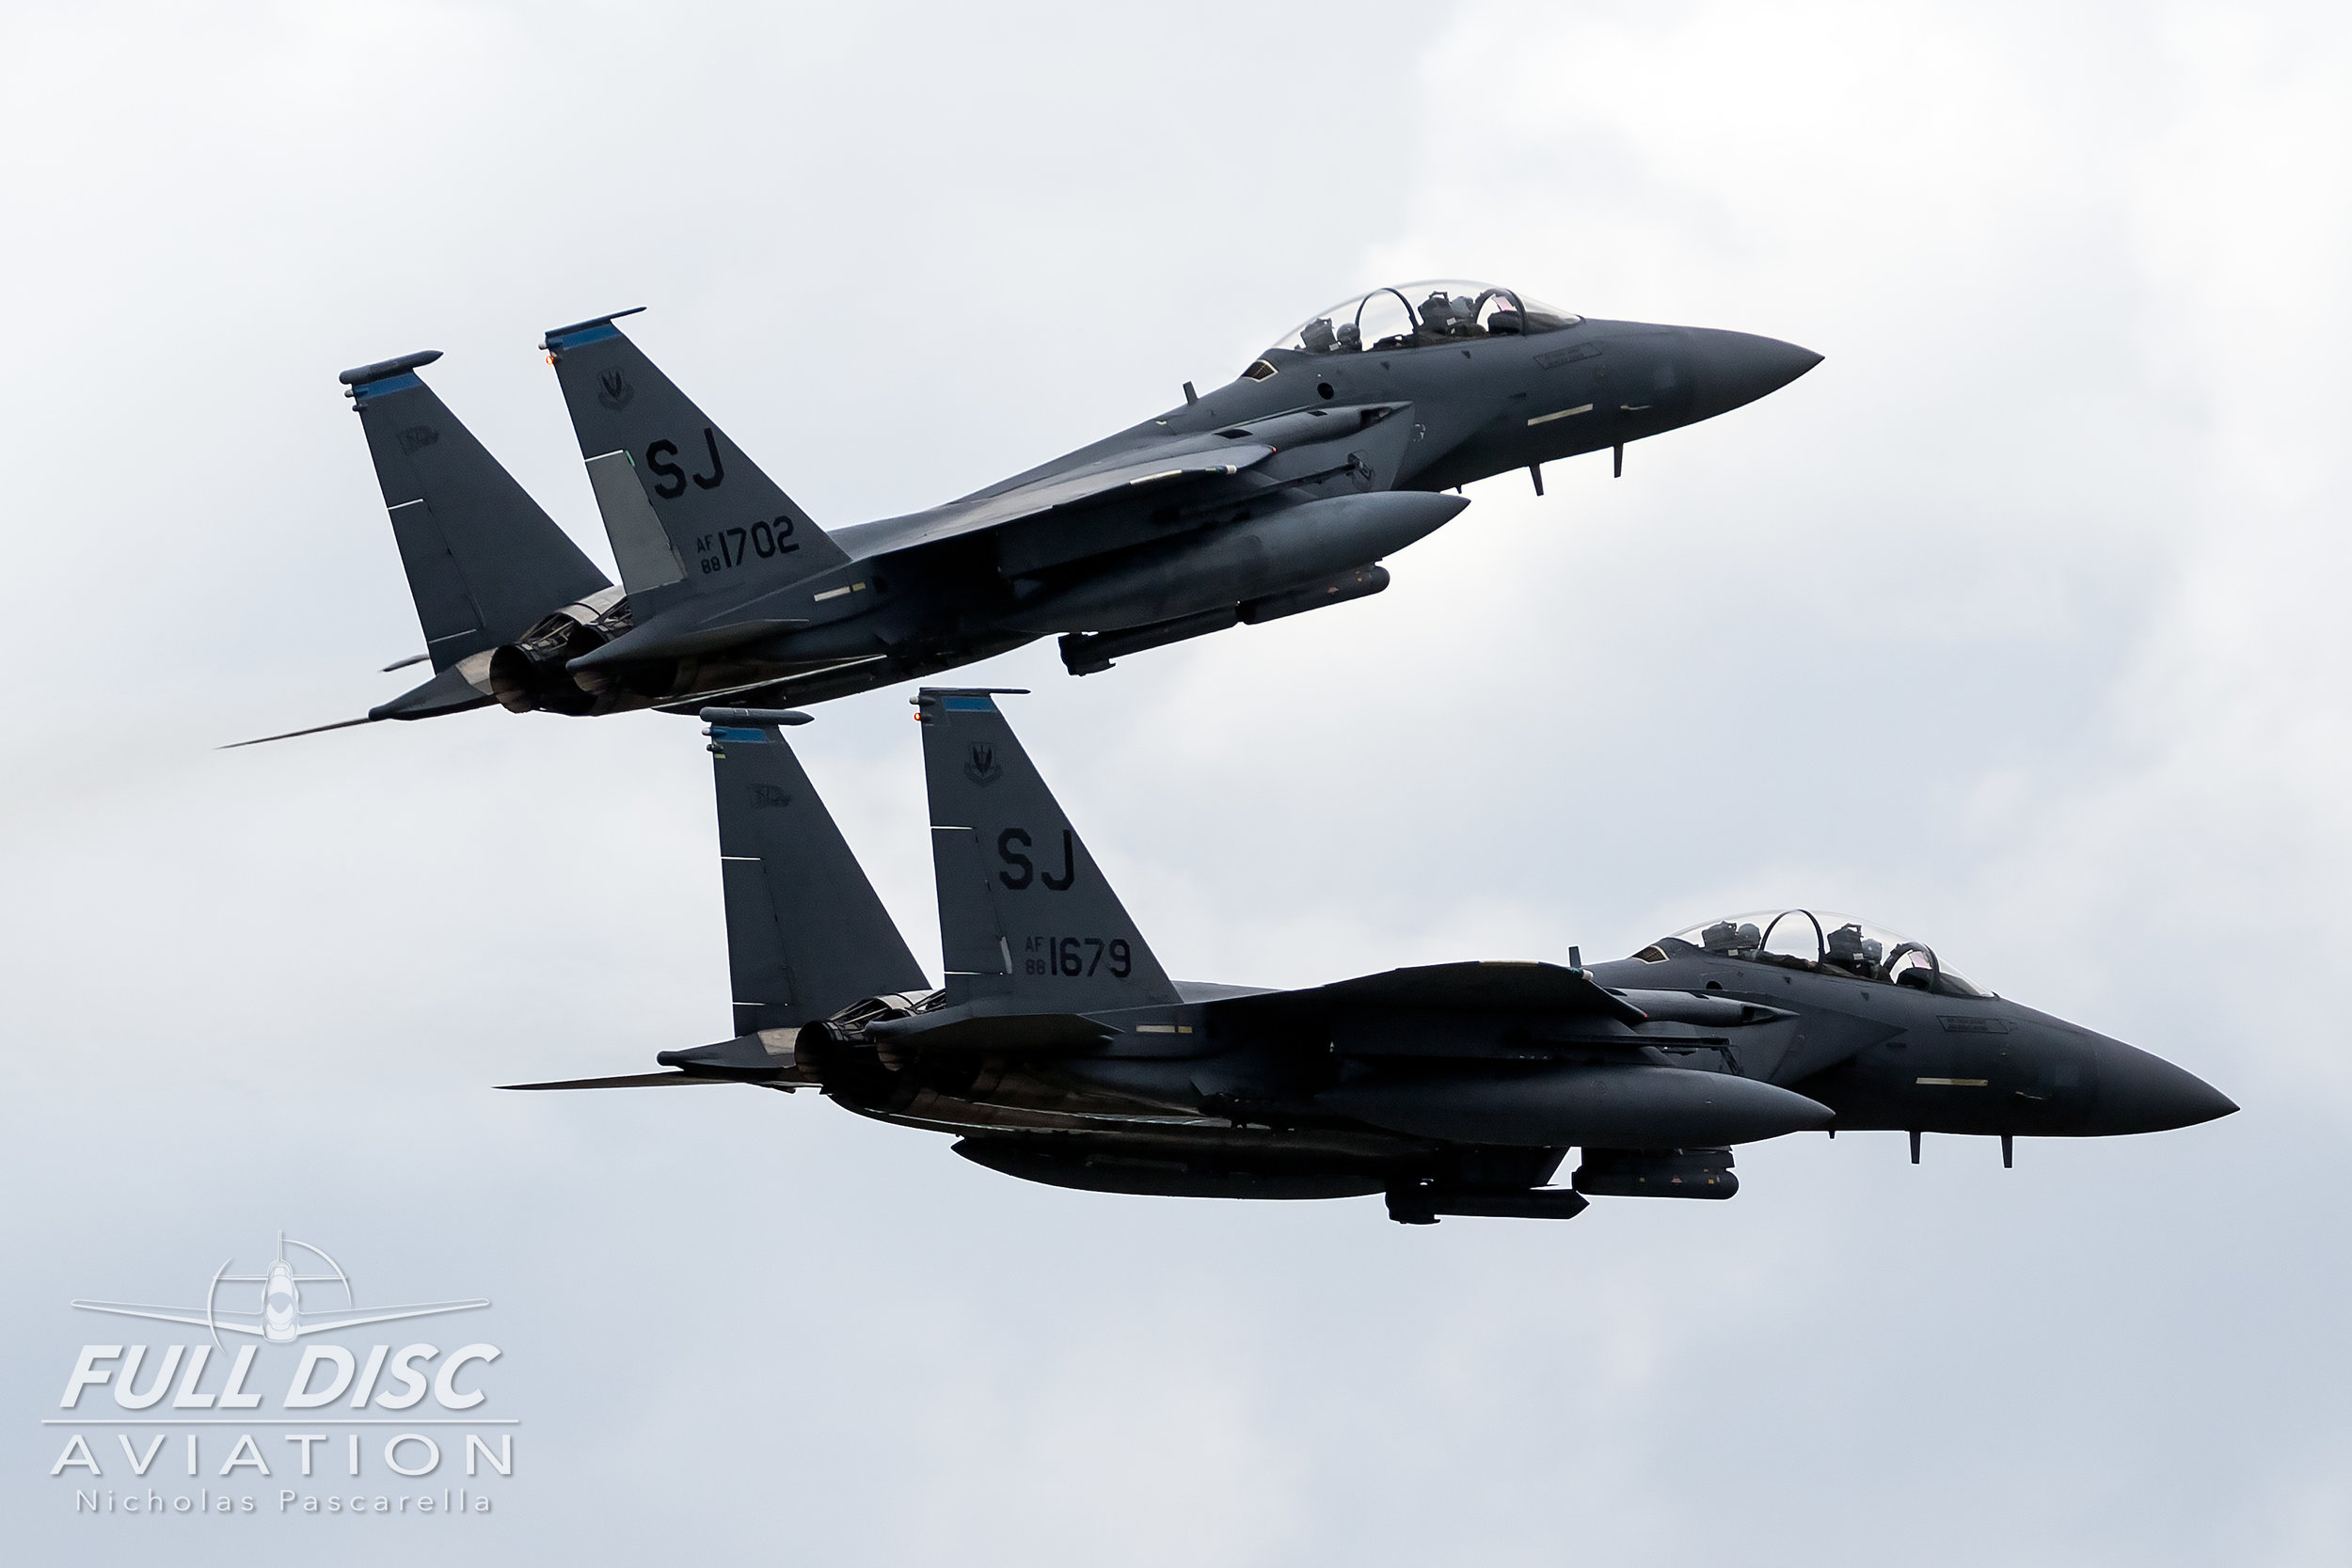 strikeeagles_wingsoverwayne_seymourjohnsonafb_nicholaspascarella_fulldiscavation_aviation_airshow.jpg